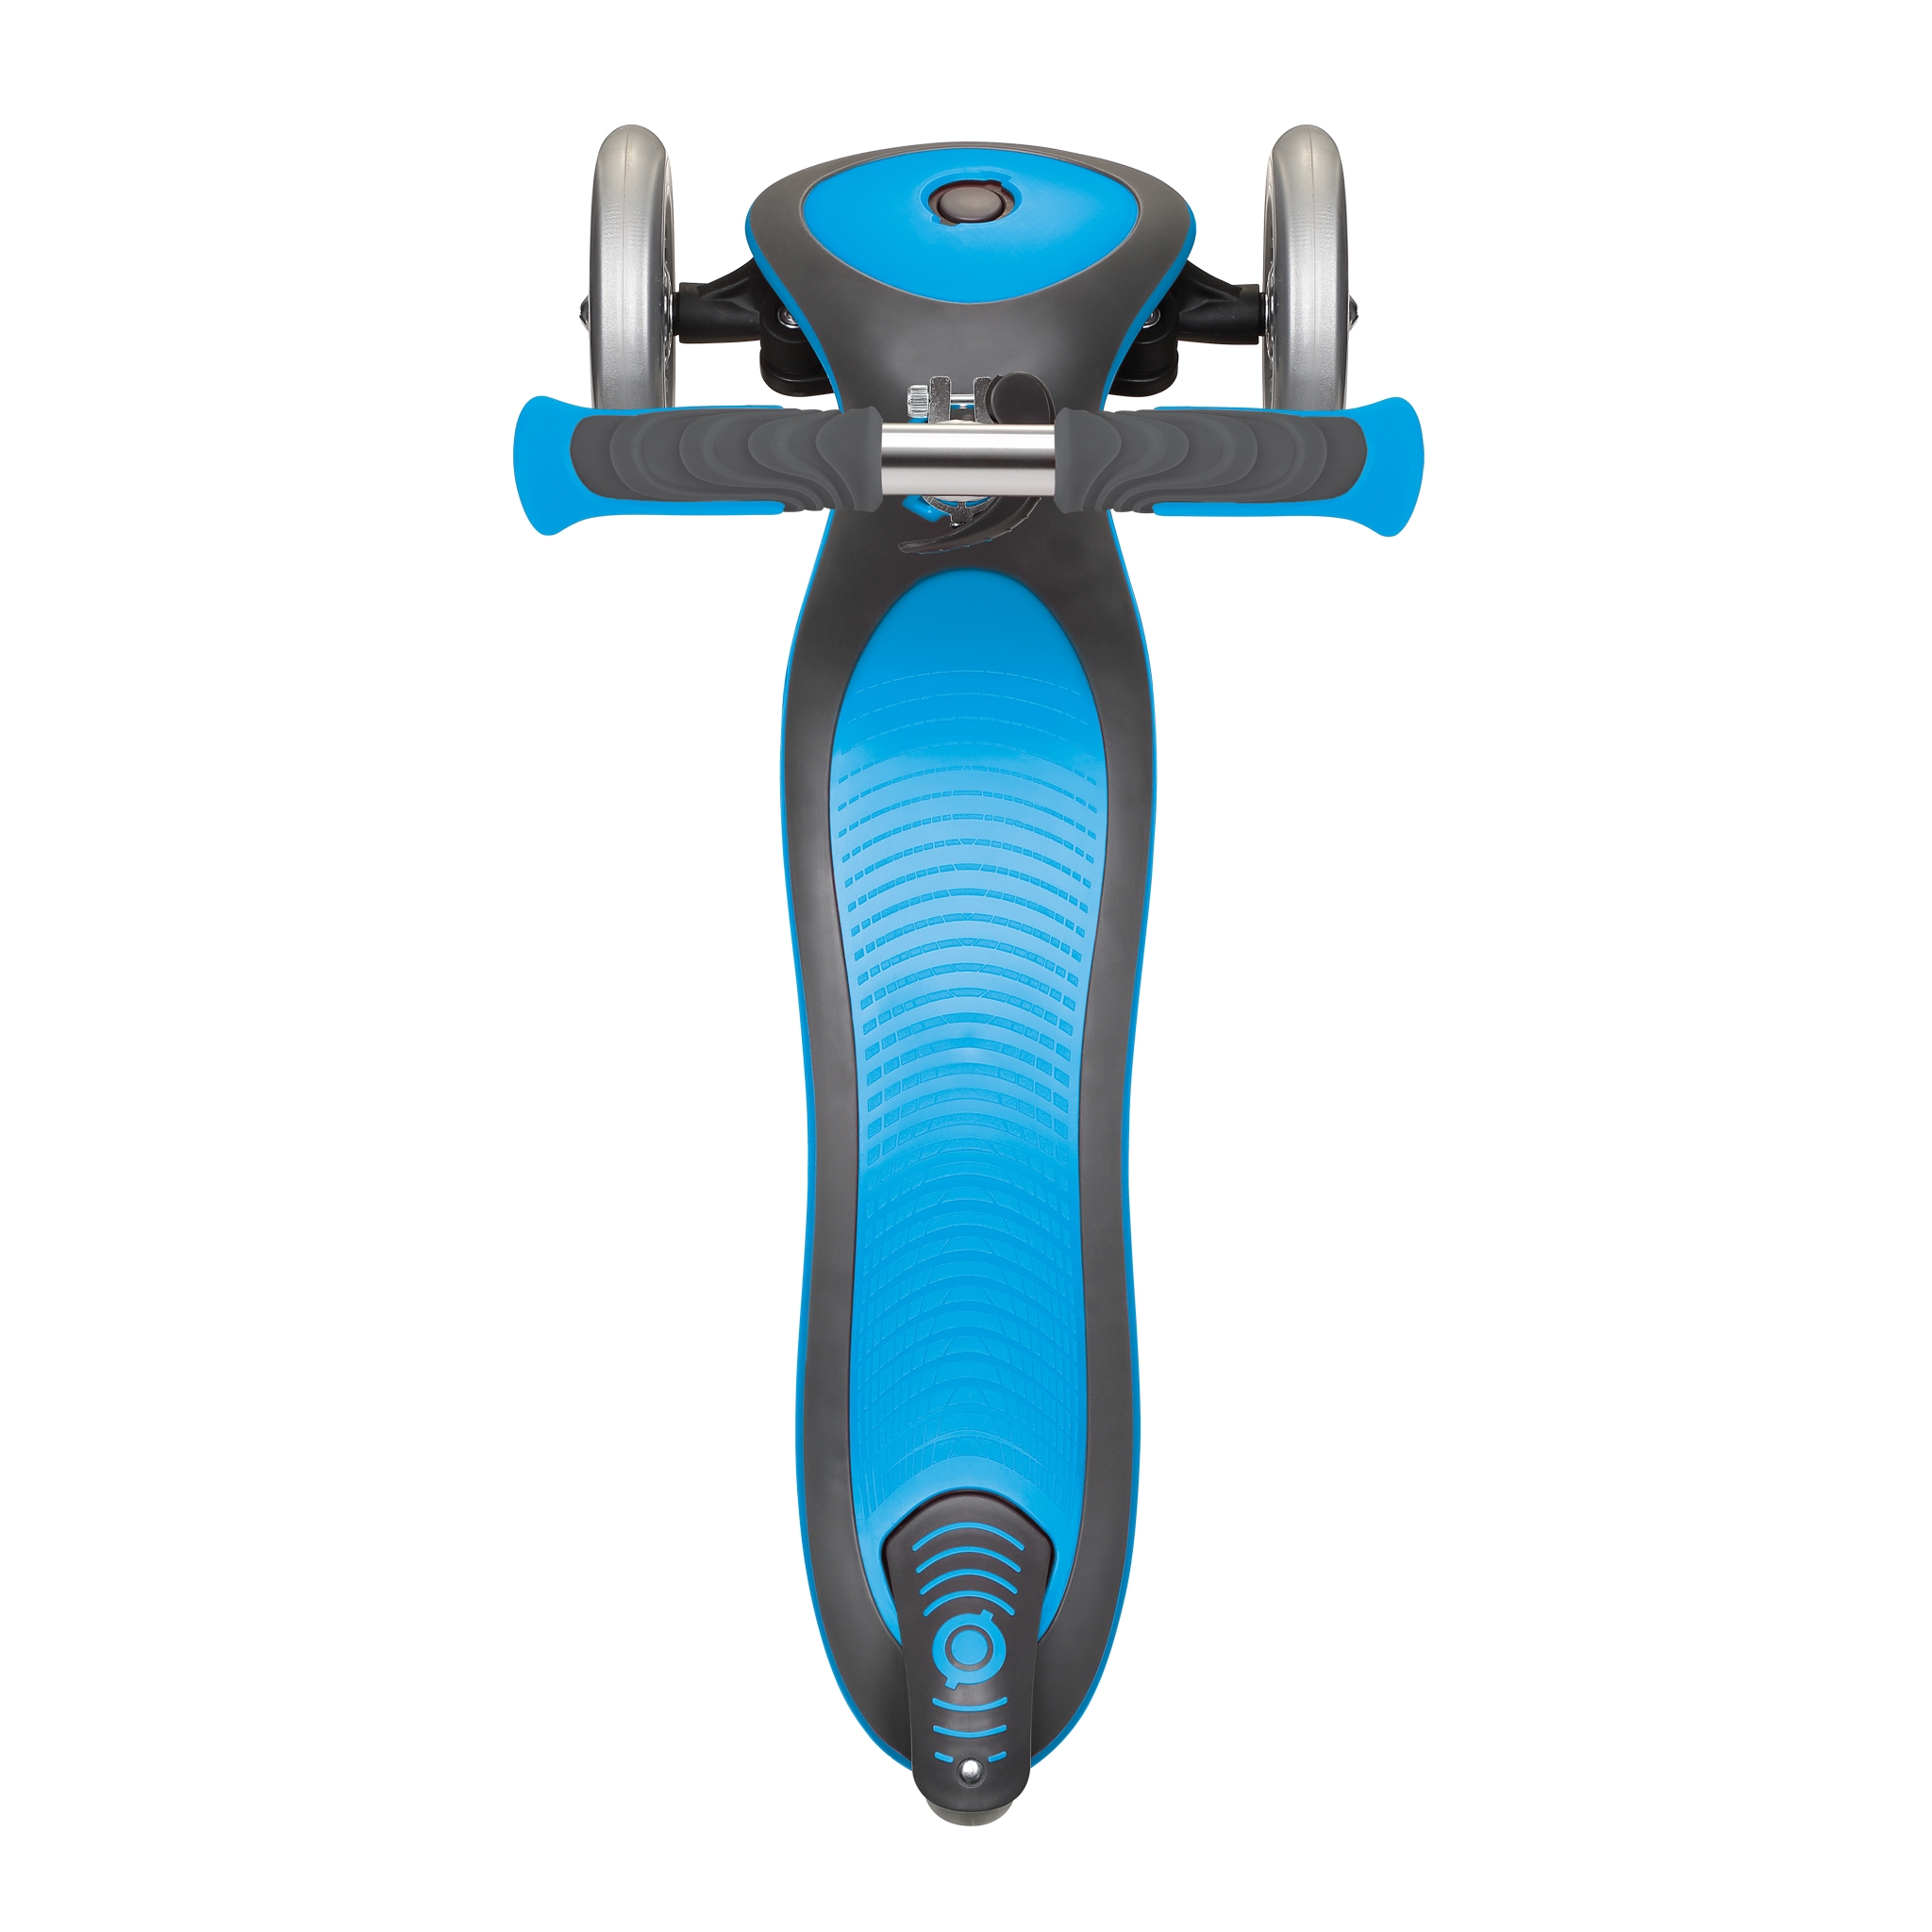 Globber-ELITE-DELUXE-3-wheel-foldable-scooter-for-kids-with-extra-wide-scooter-deck-sky-blue